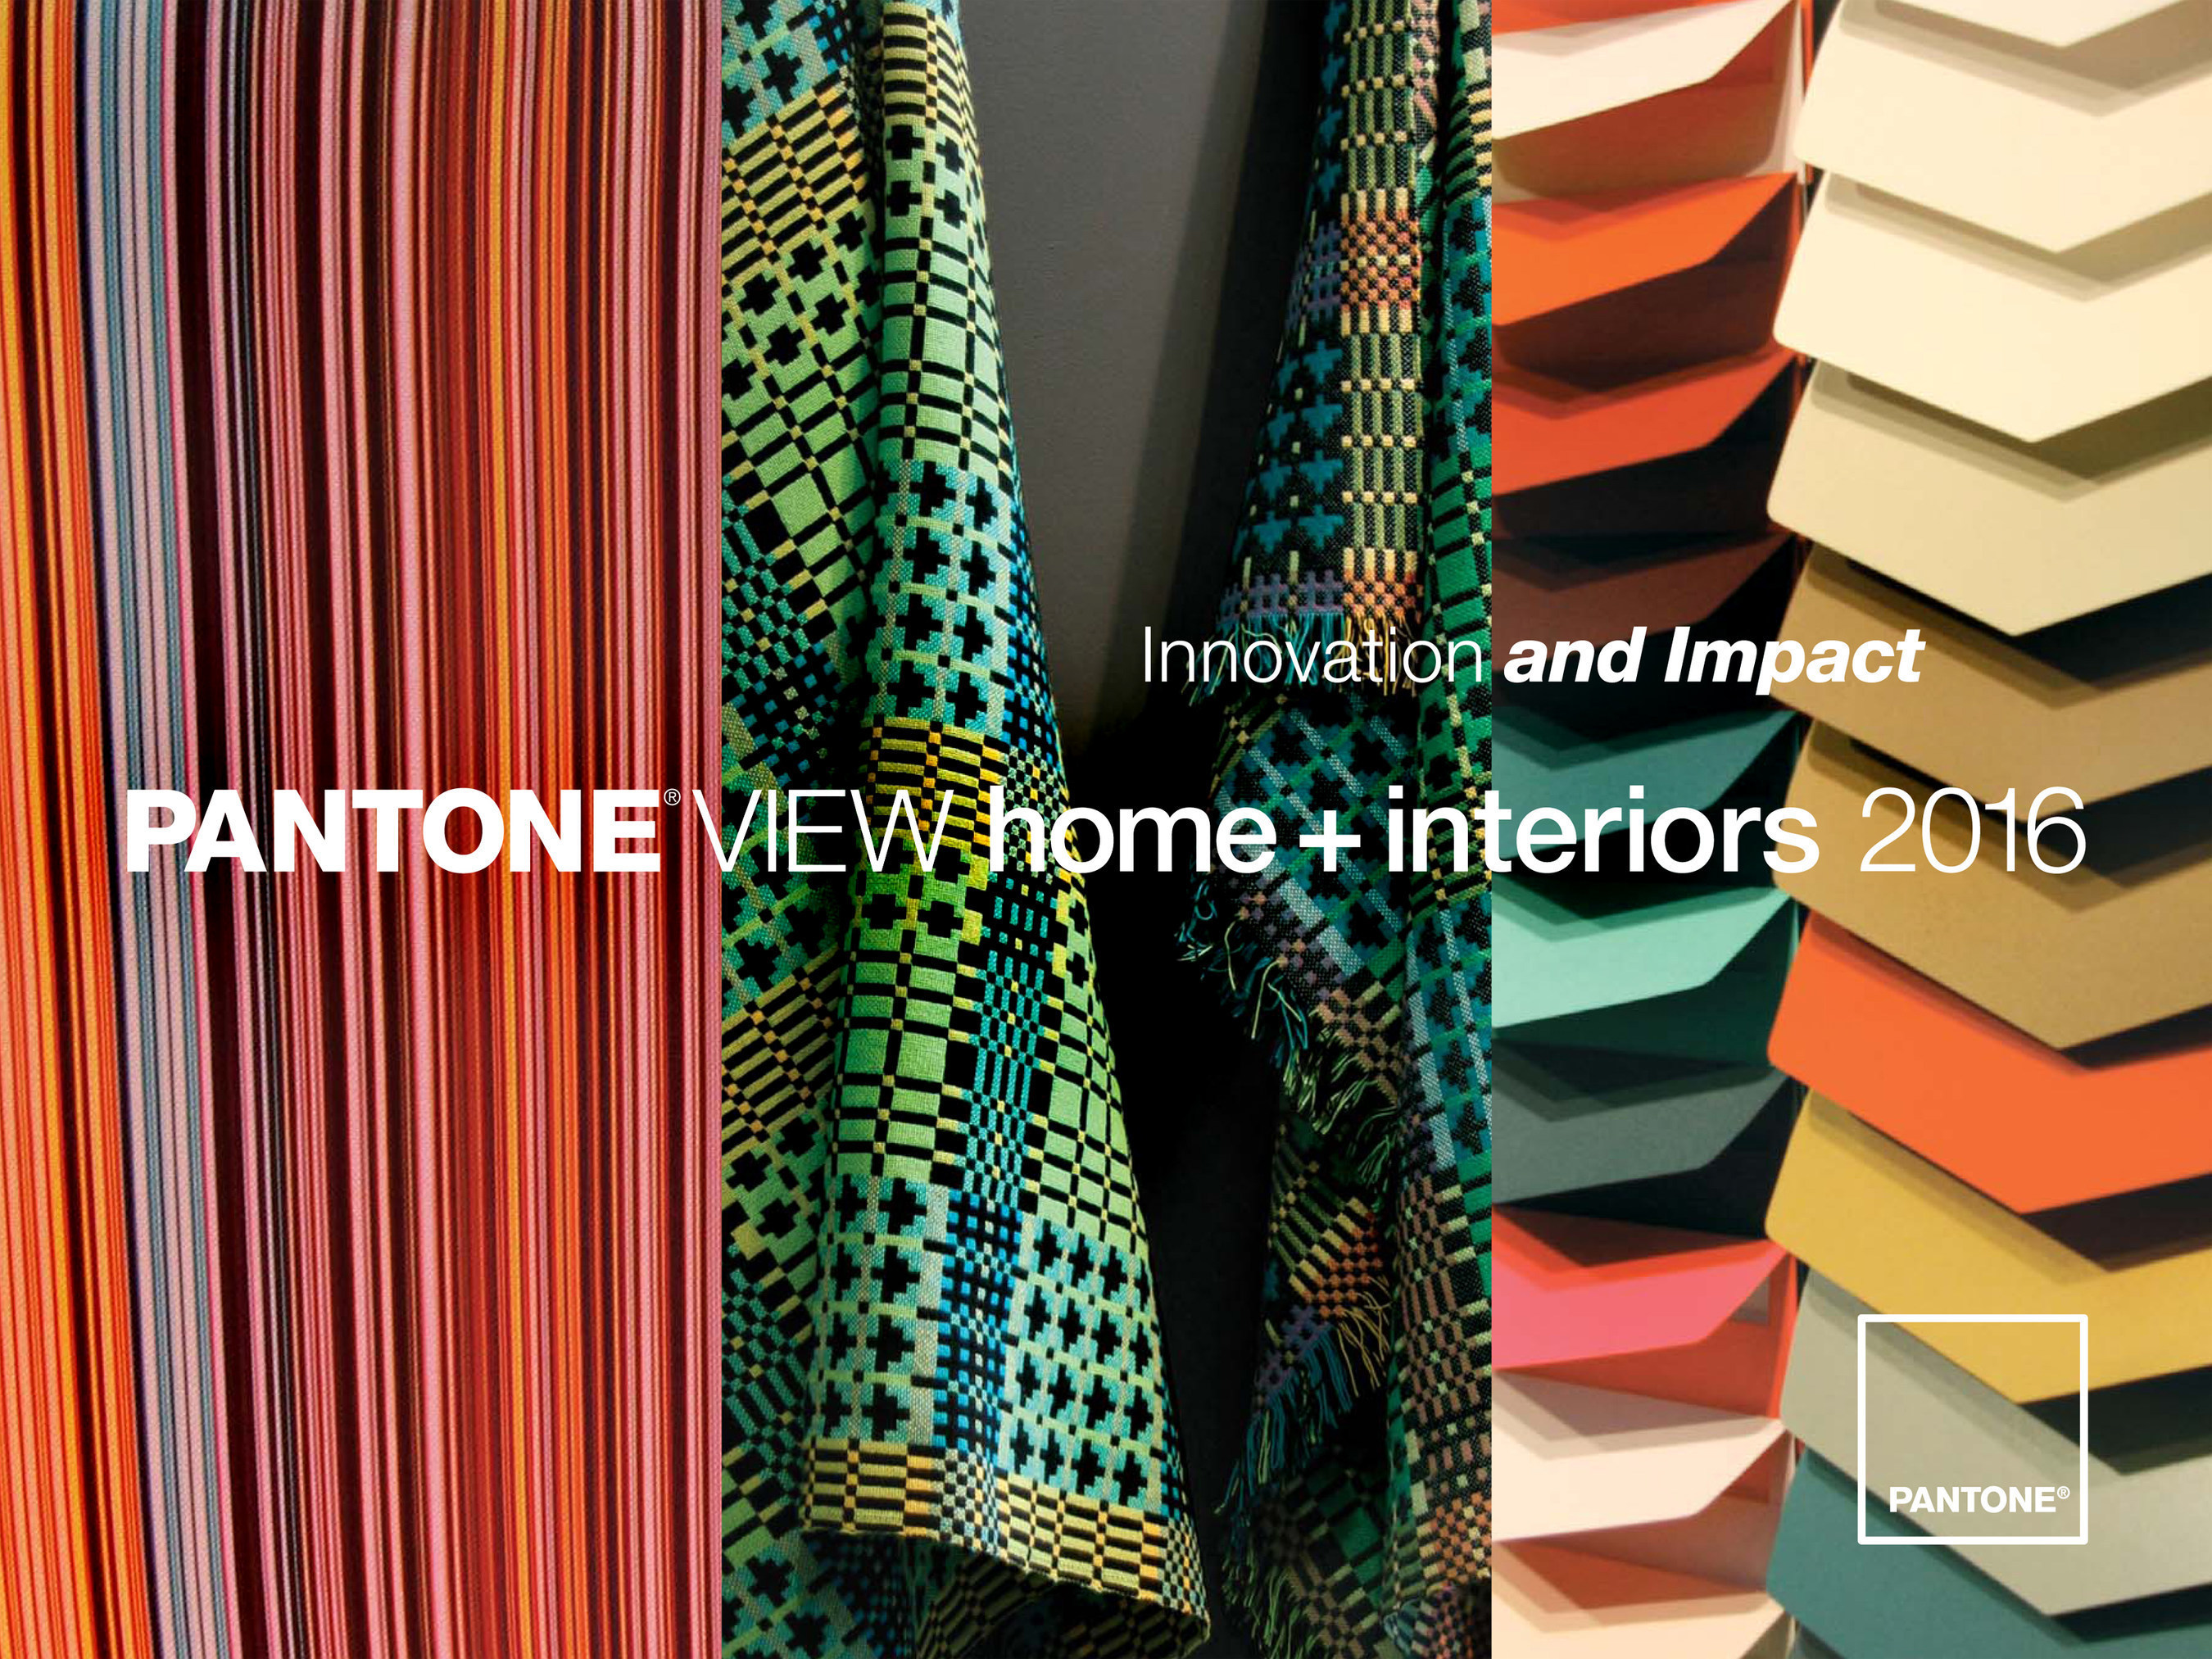 Pantone color institute announces 2016 color trends for home furnishings and interior design - Interior design color trends in ...